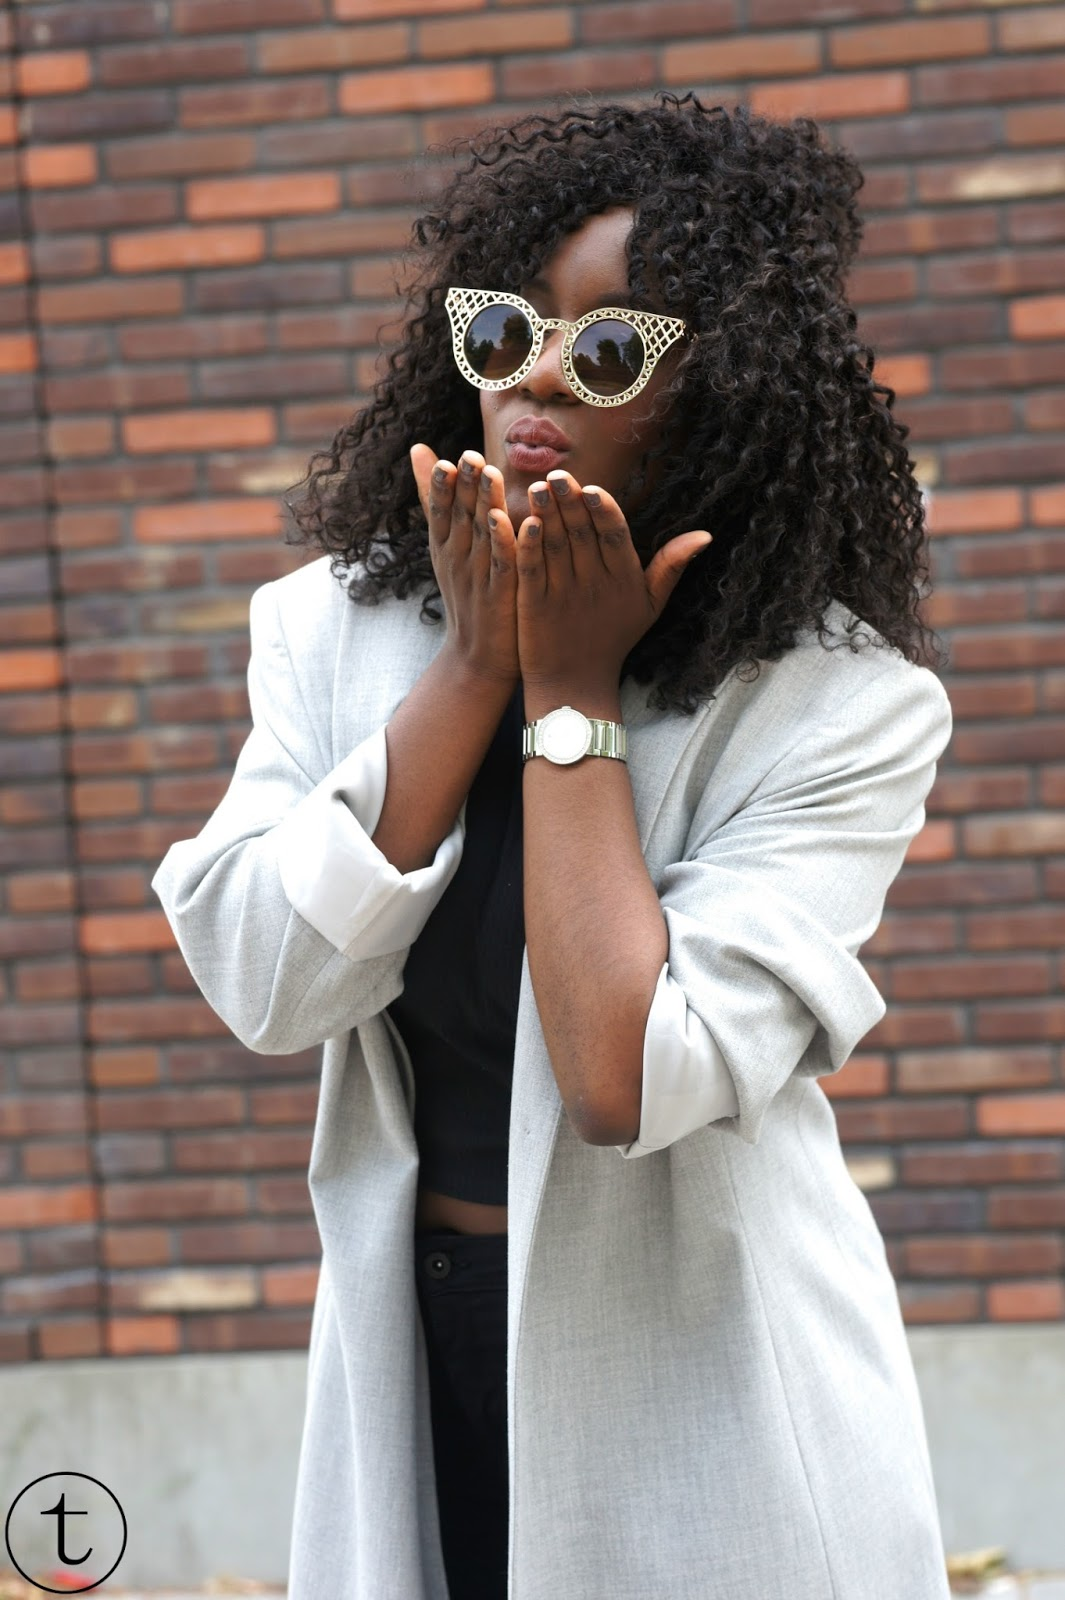 outfit post wearing a long grey coat and golden sunglasses from polette